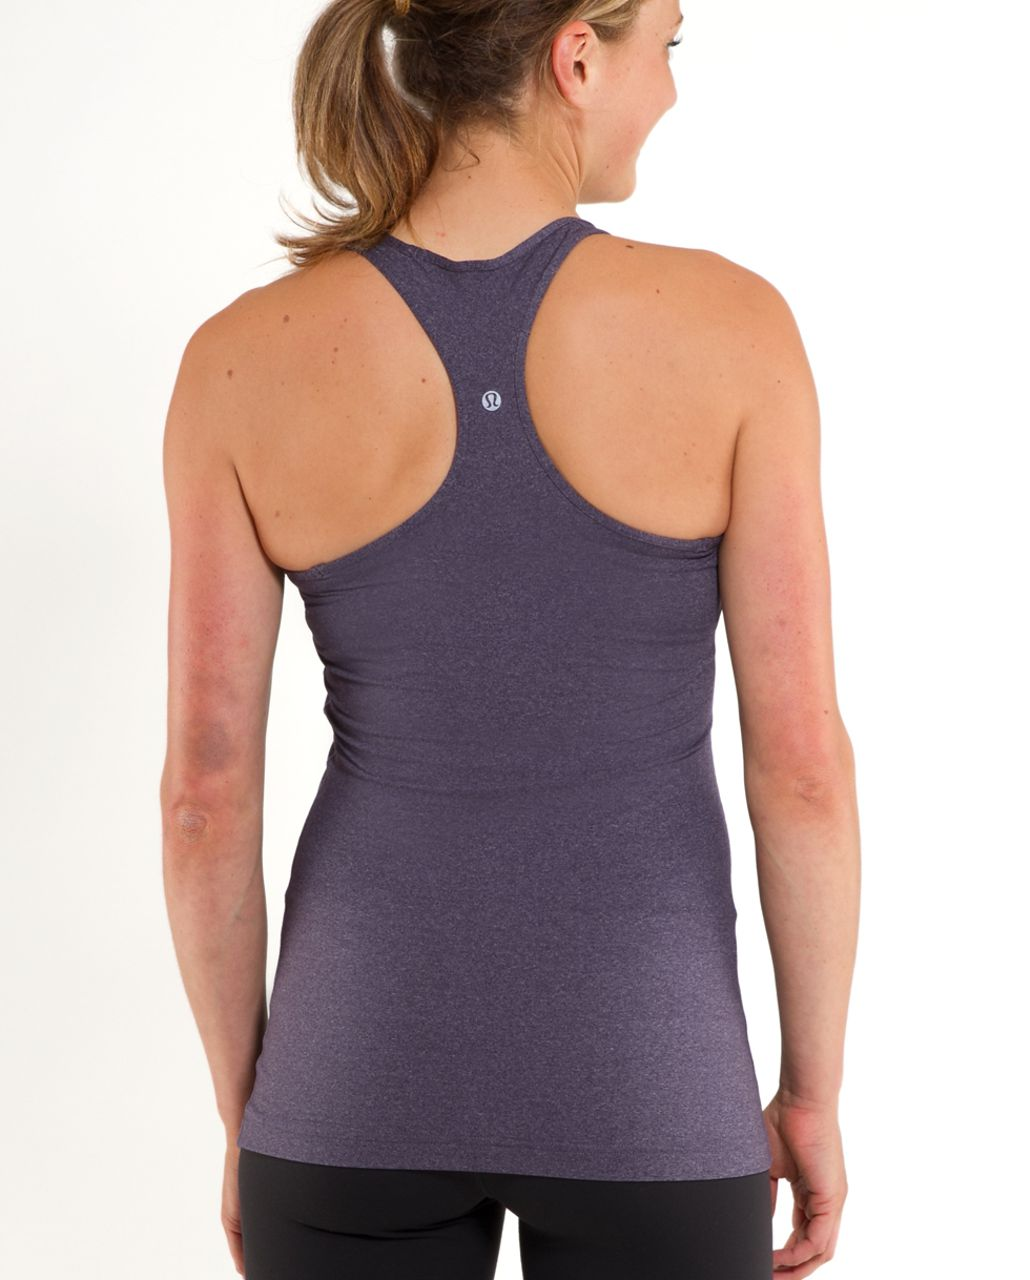 Lululemon Cool Racerback - Heathered Black Swan